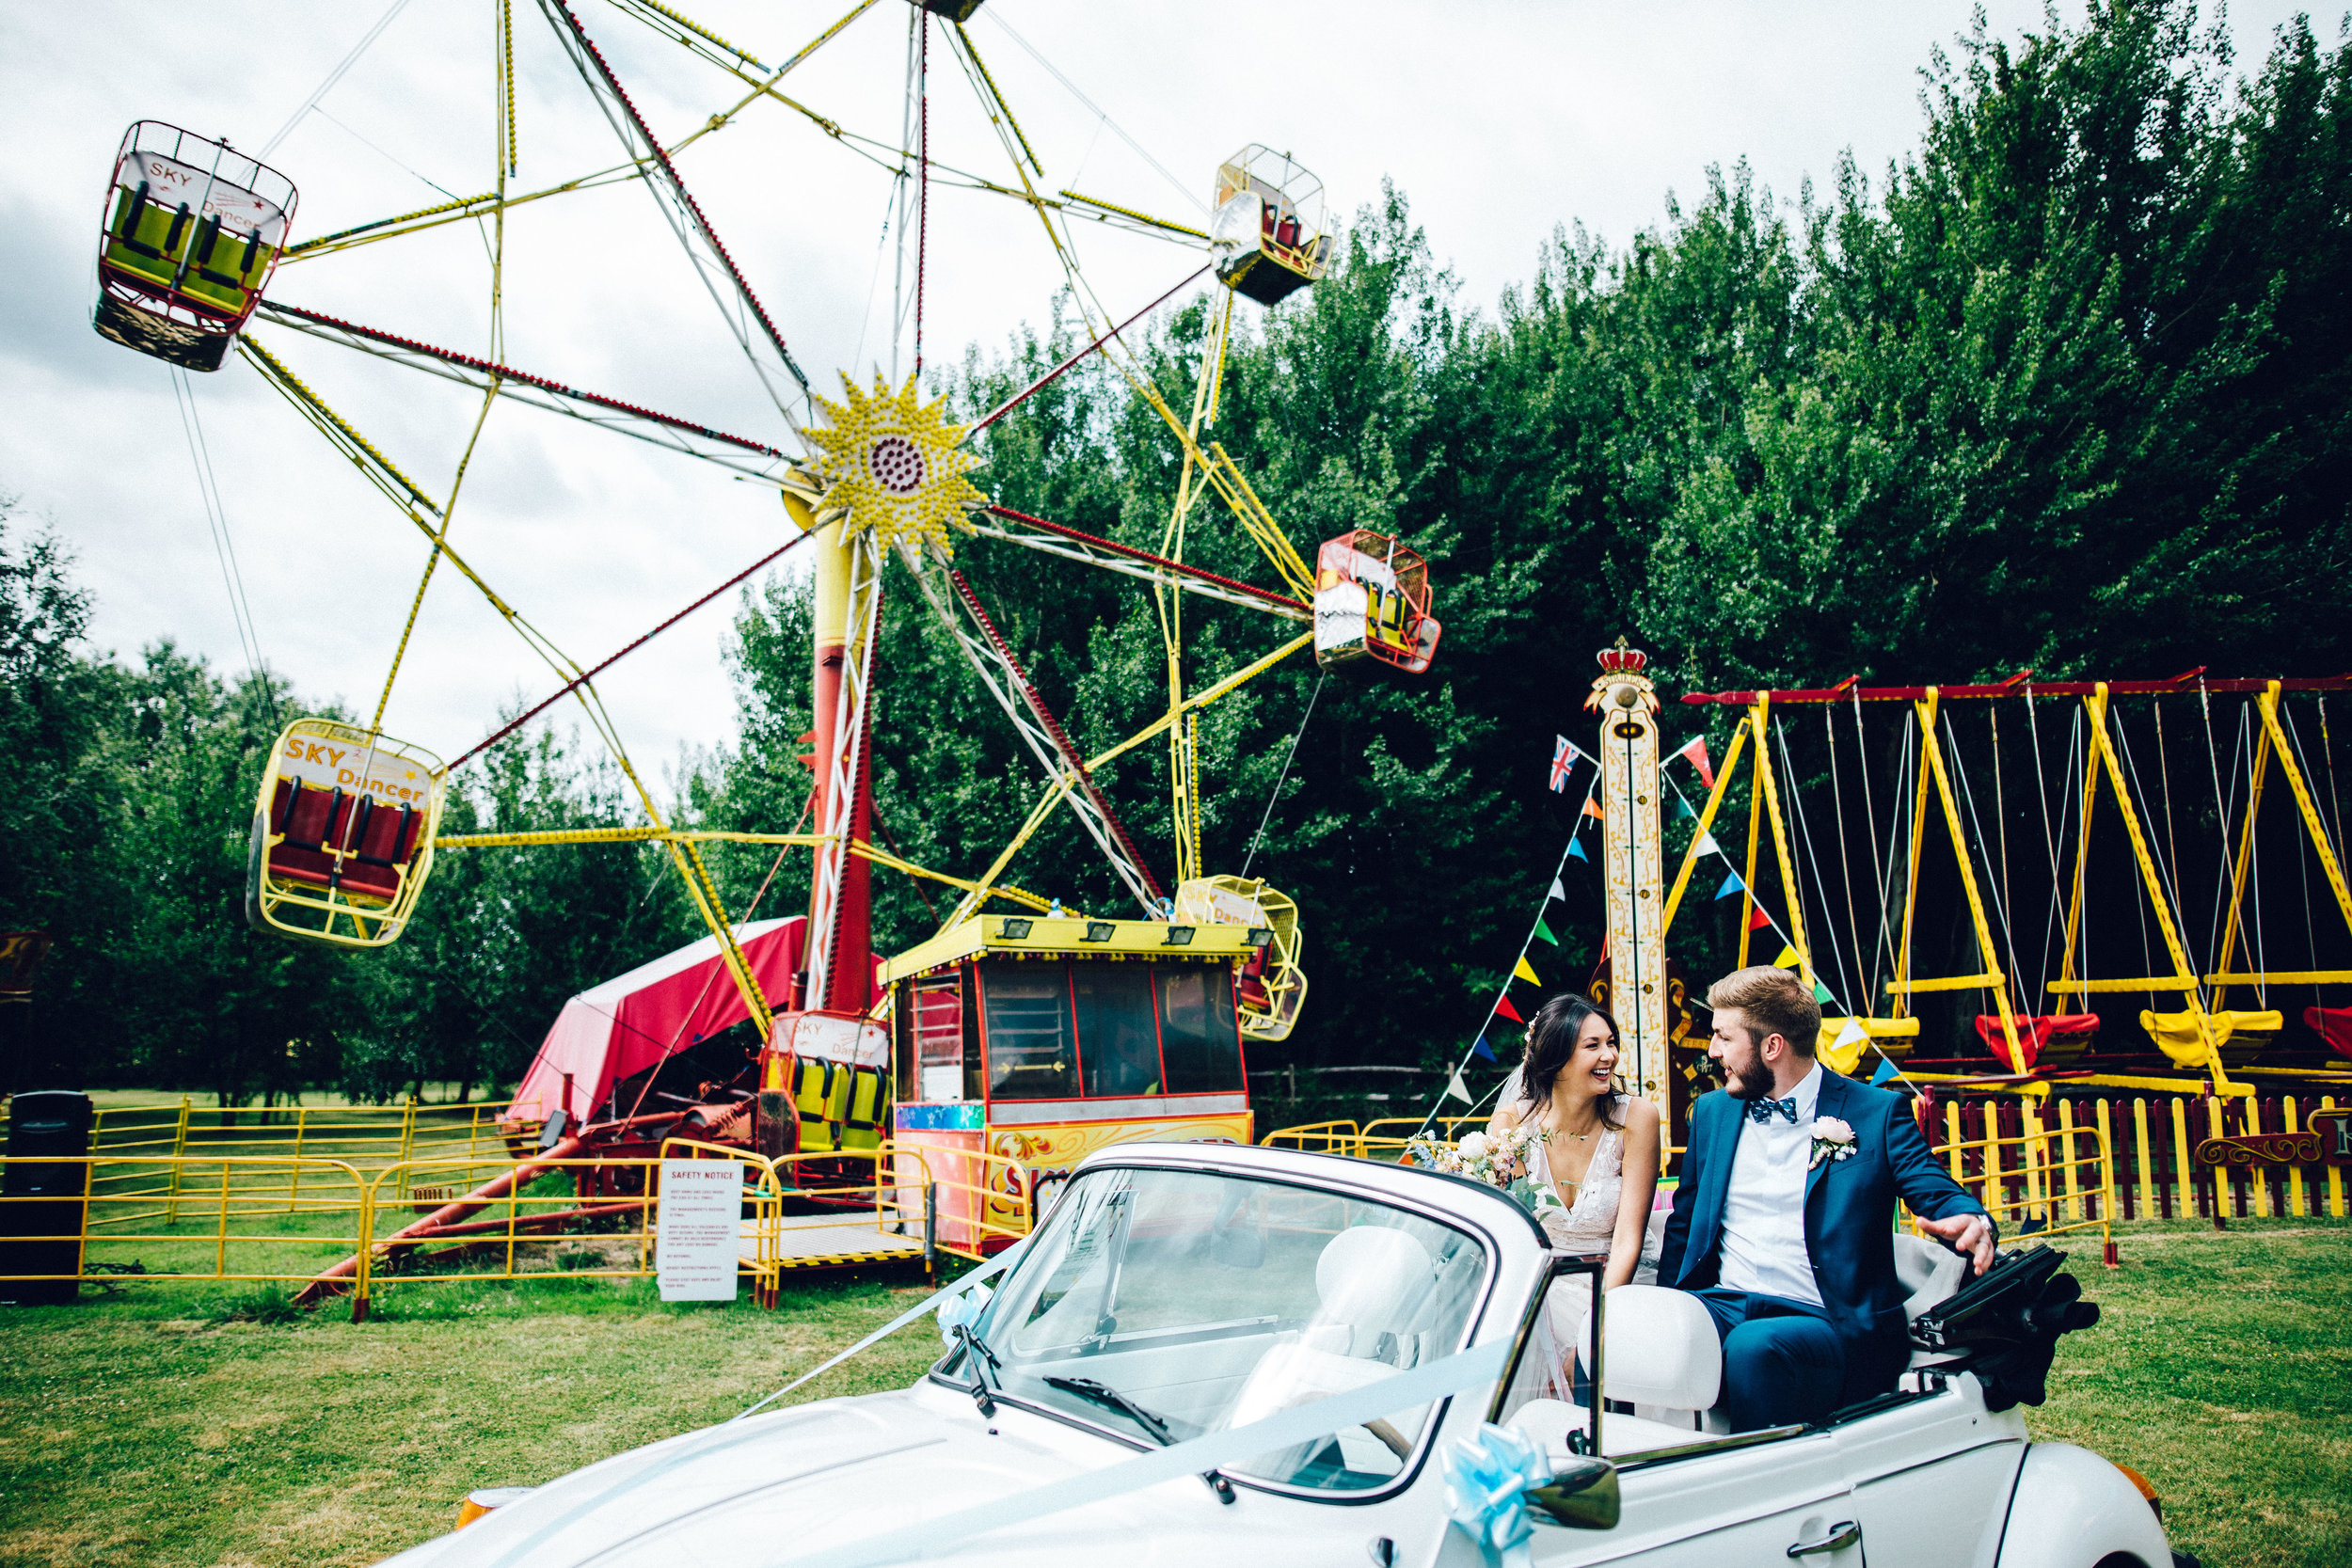 Vintage care and vintage fairground at Marleybrook House